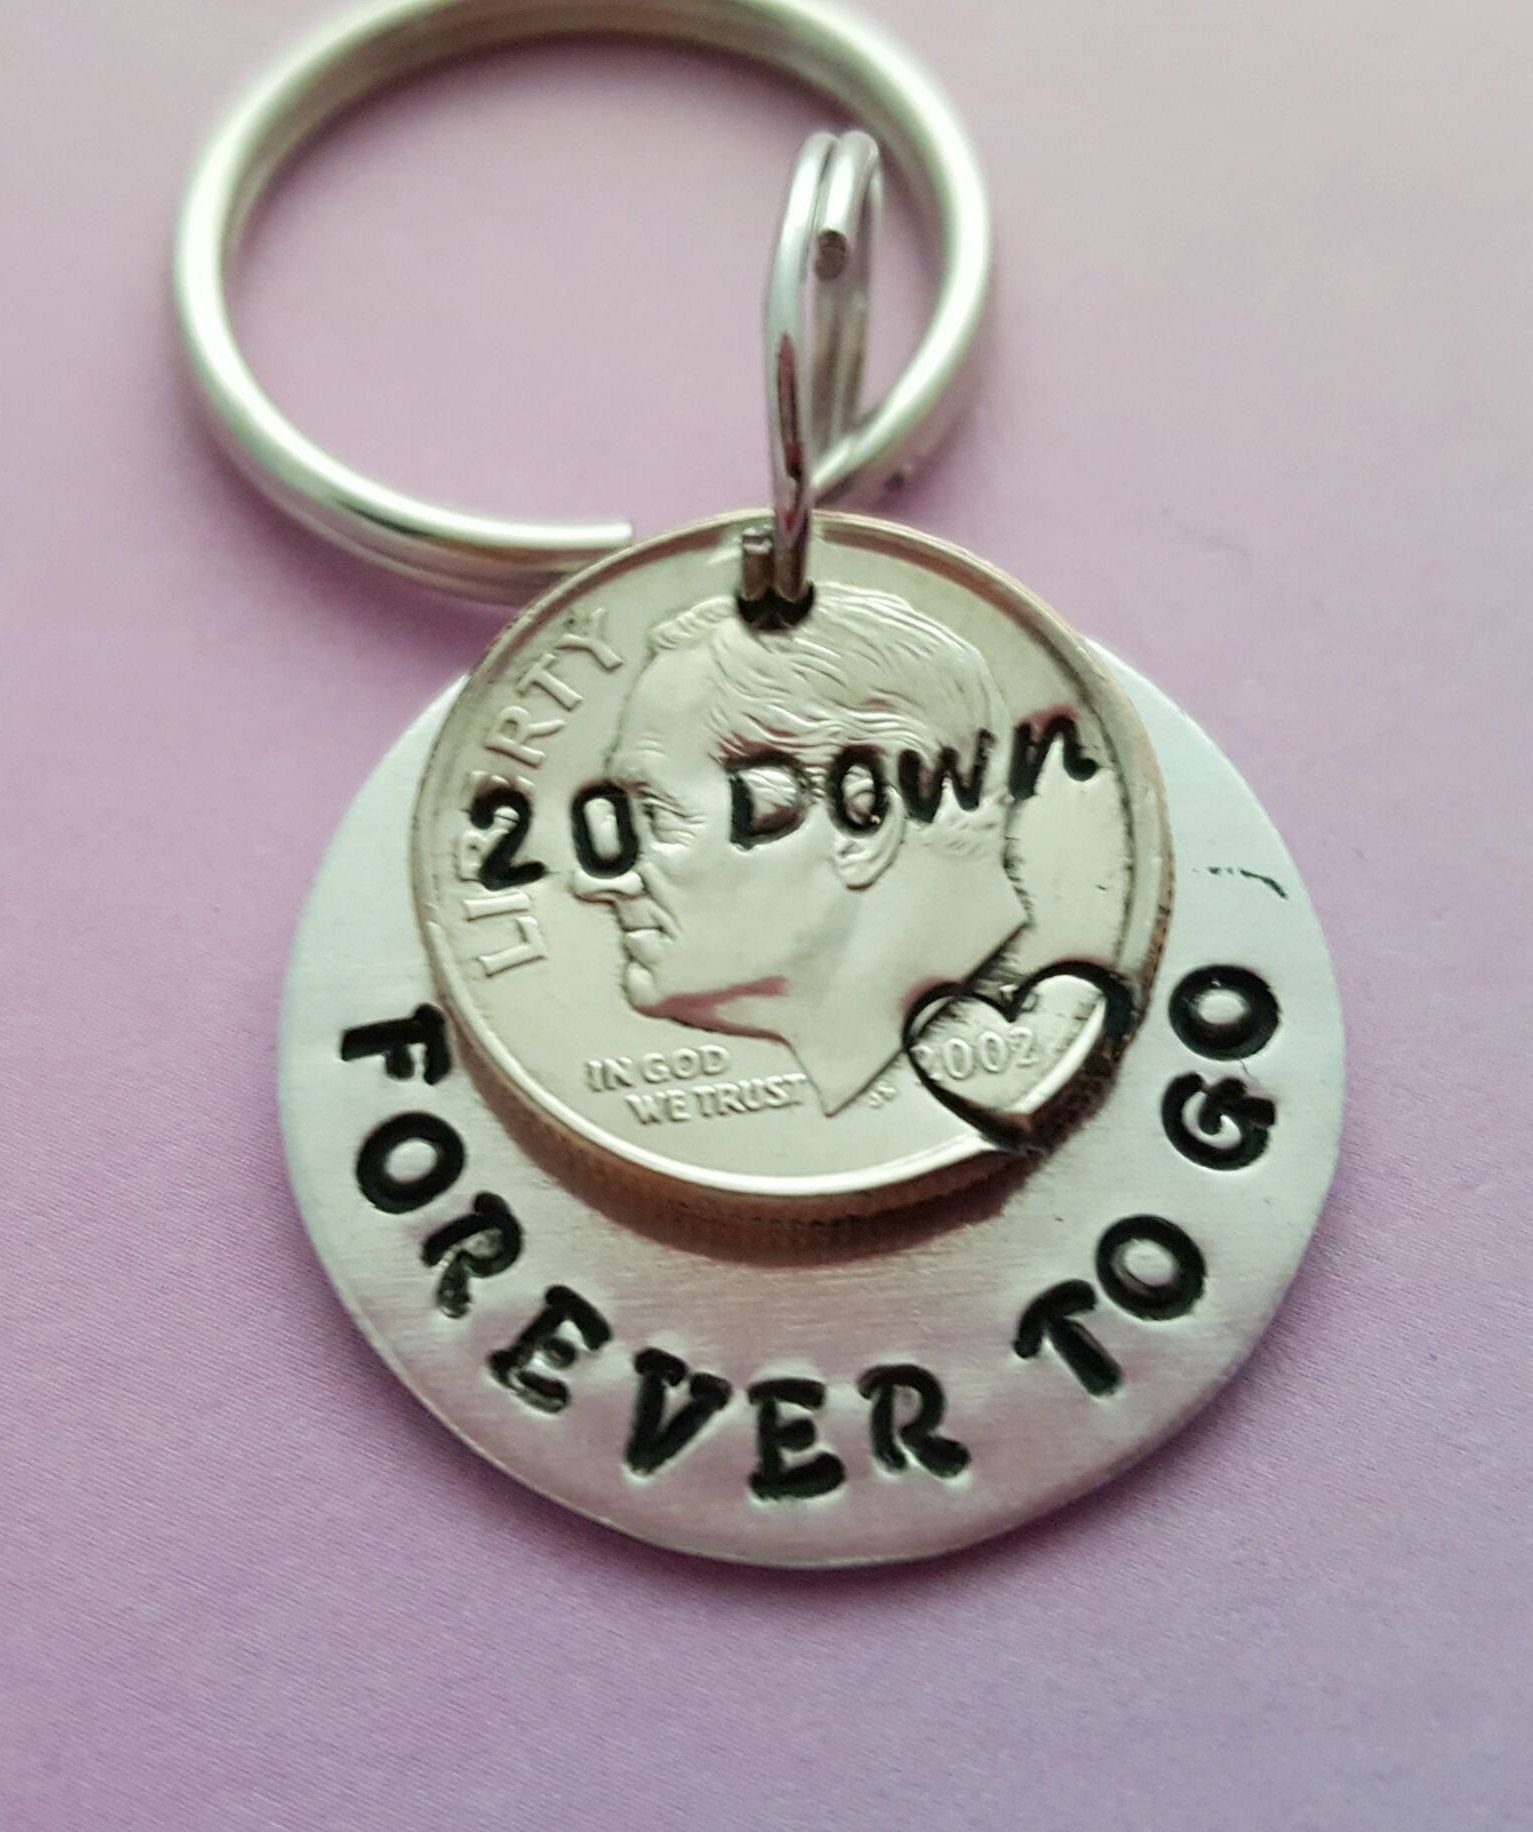 10 Lovable Ideas For 20Th Wedding Anniversary 20th anniversary gift idea 20 year wedding anniversary keychain 1 2020